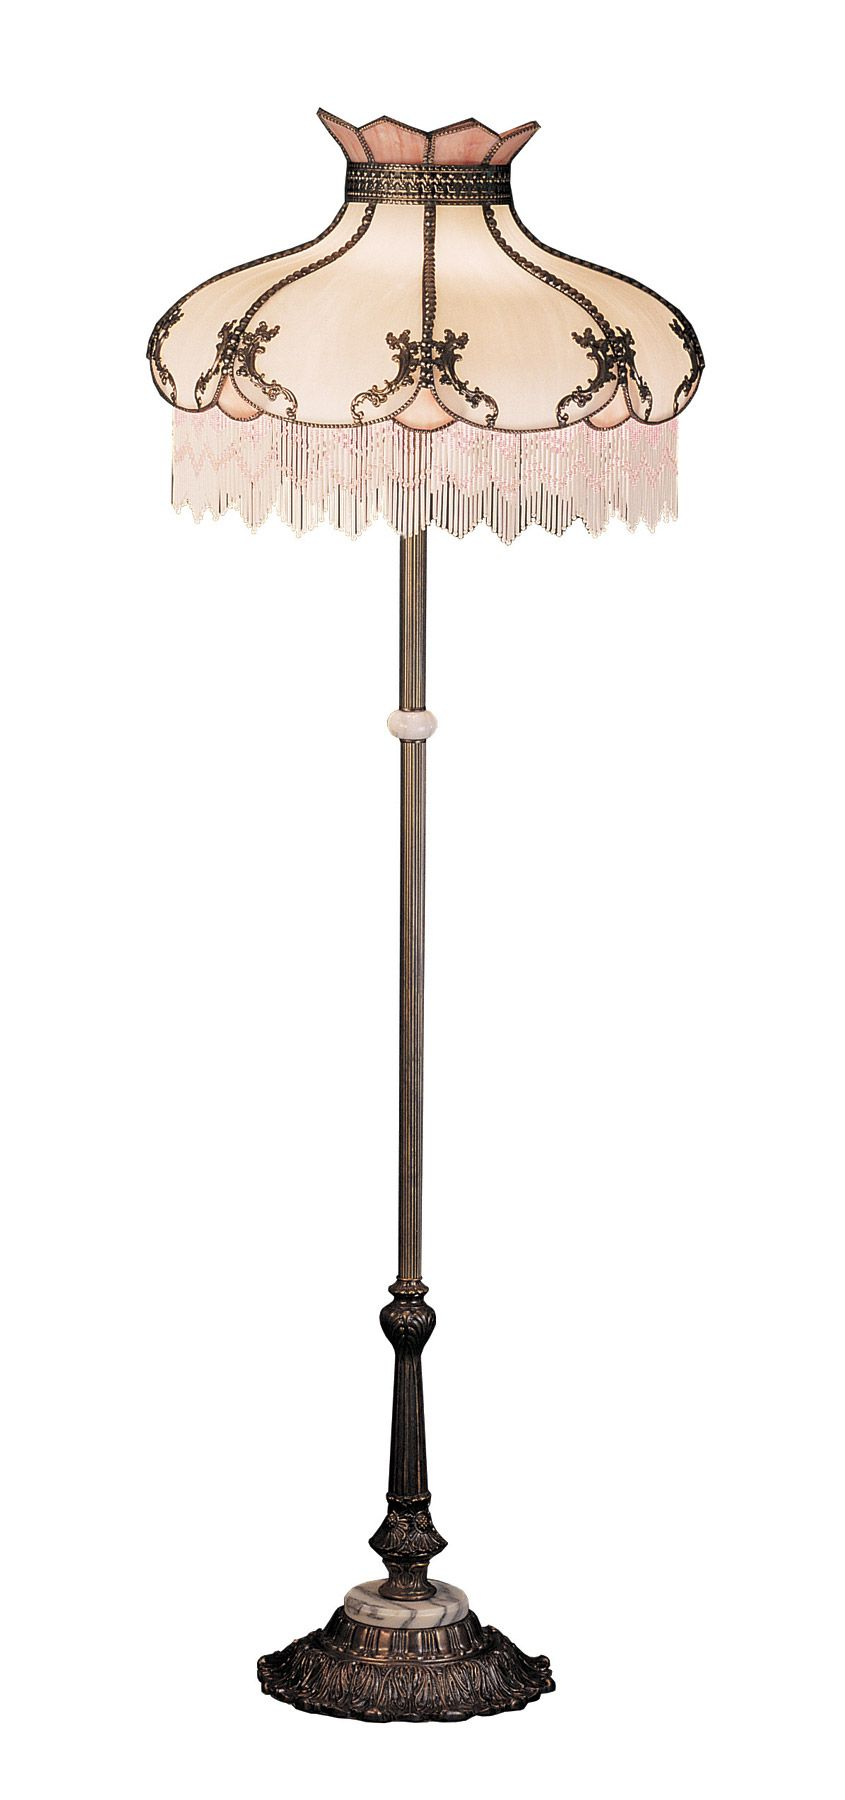 Rose victorian floor lamp fantasy homes rooms and interiors rose victorian floor lamp aloadofball Gallery